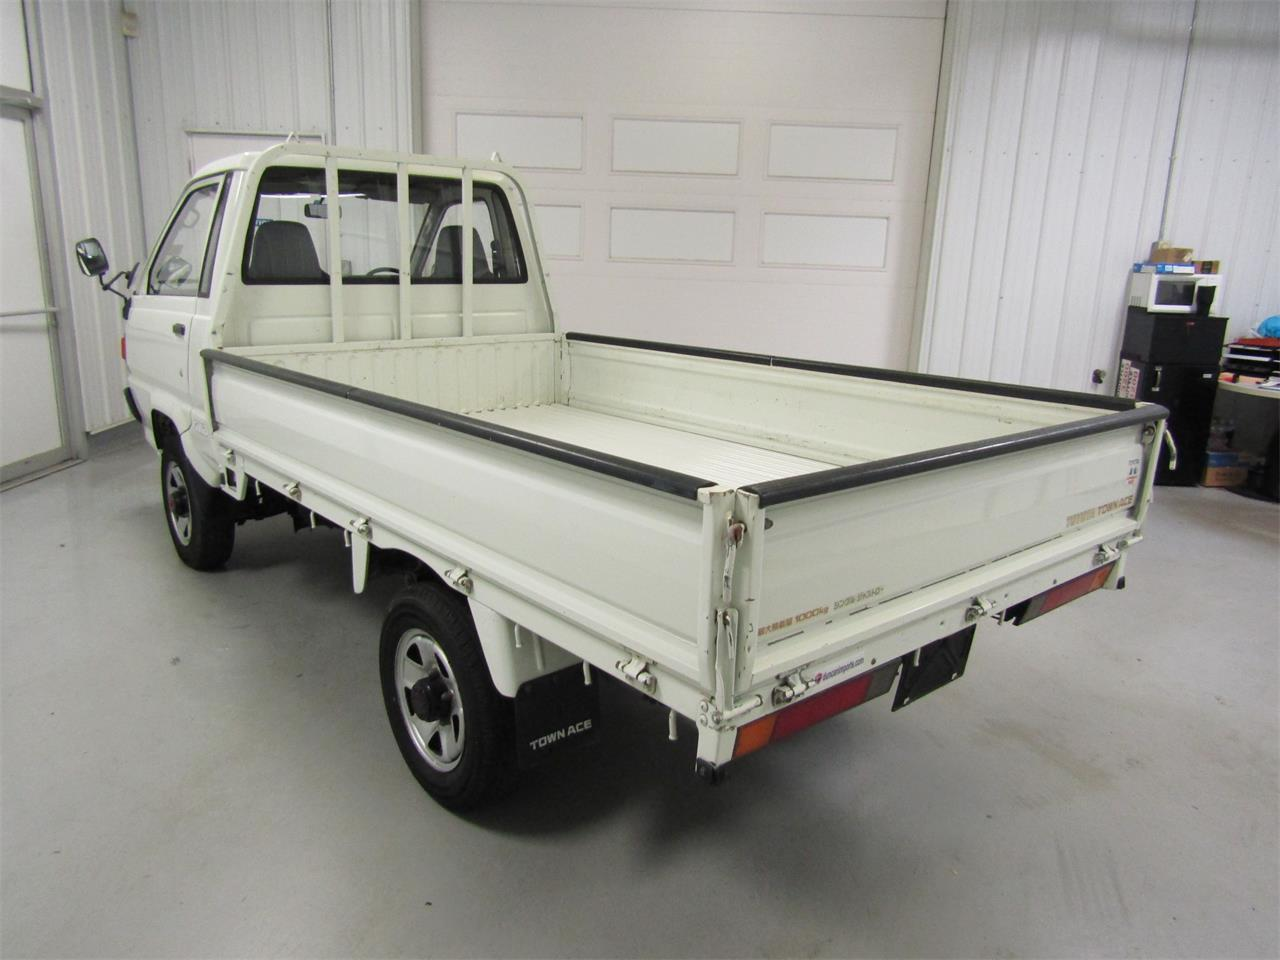 Large Picture of '89 TownAce located in Virginia - $8,999.00 - JZ39